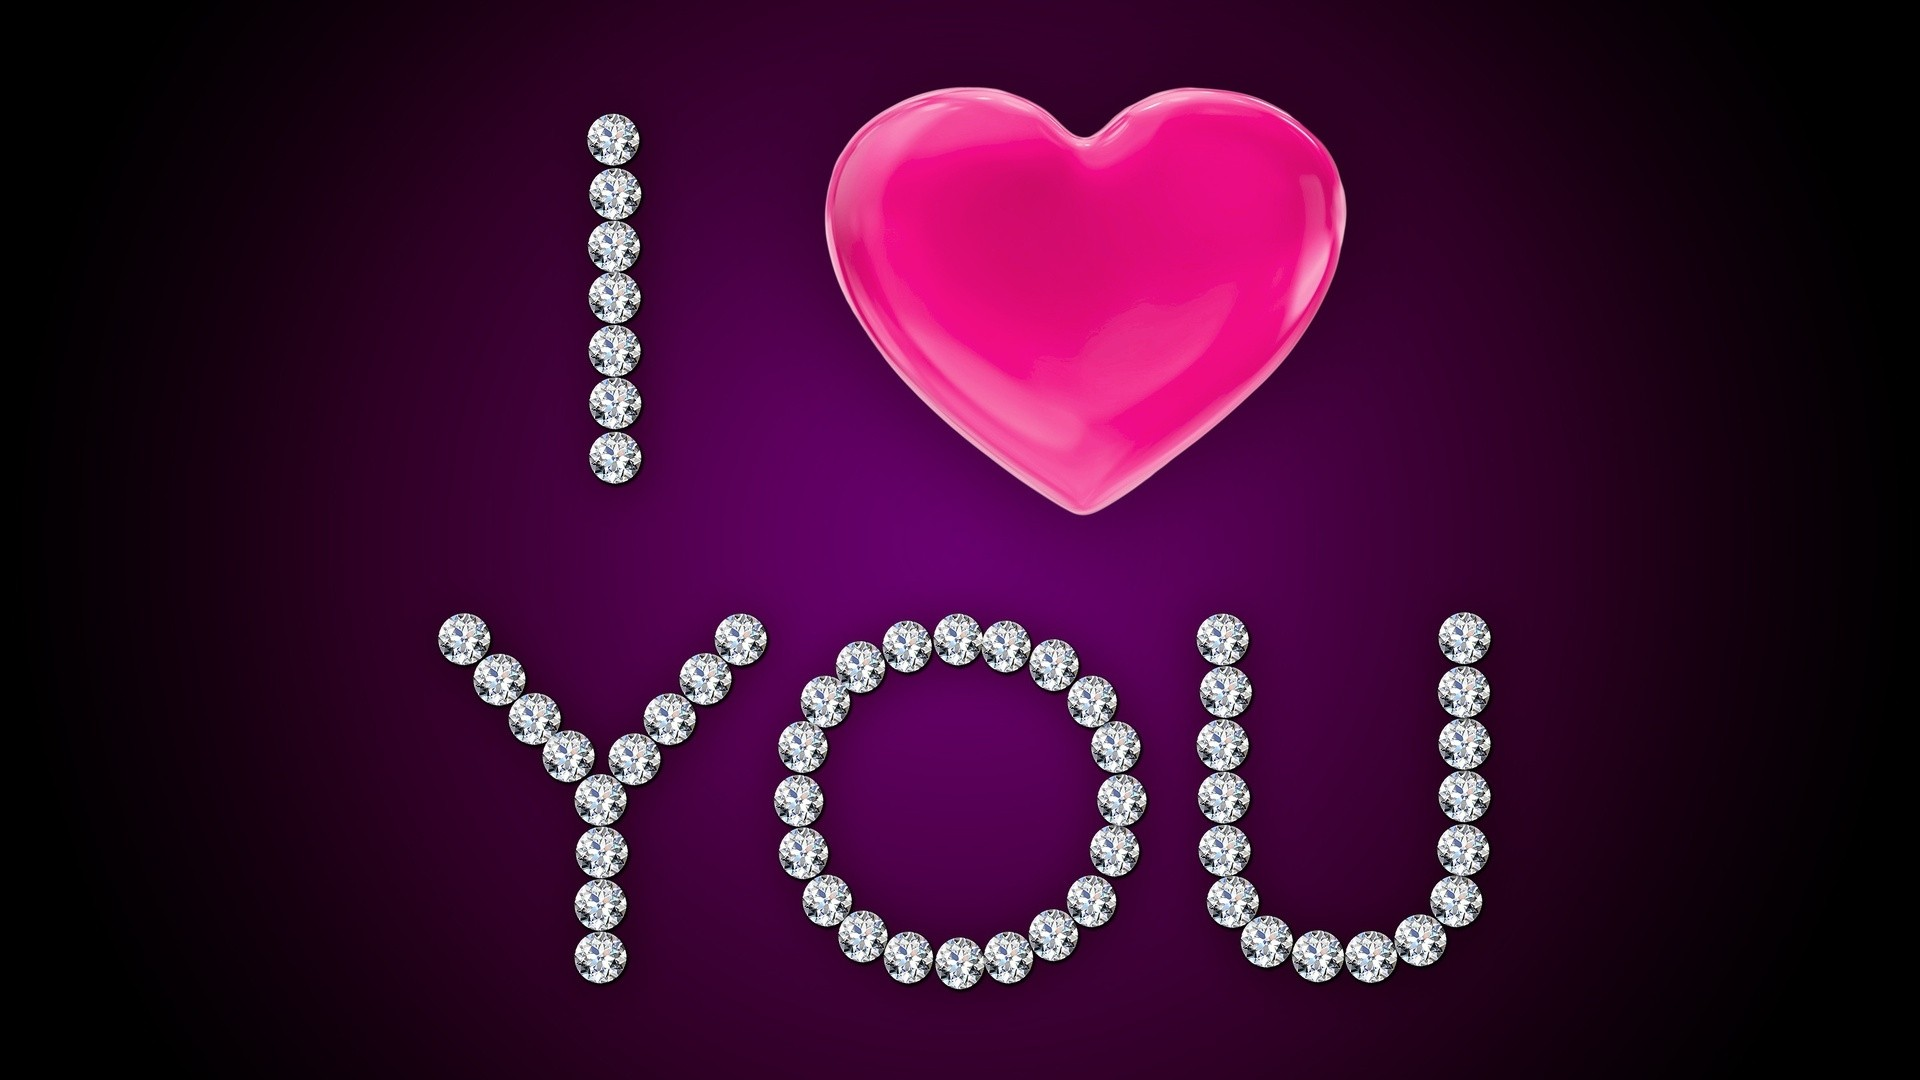 I Love You Wallpaper for pc